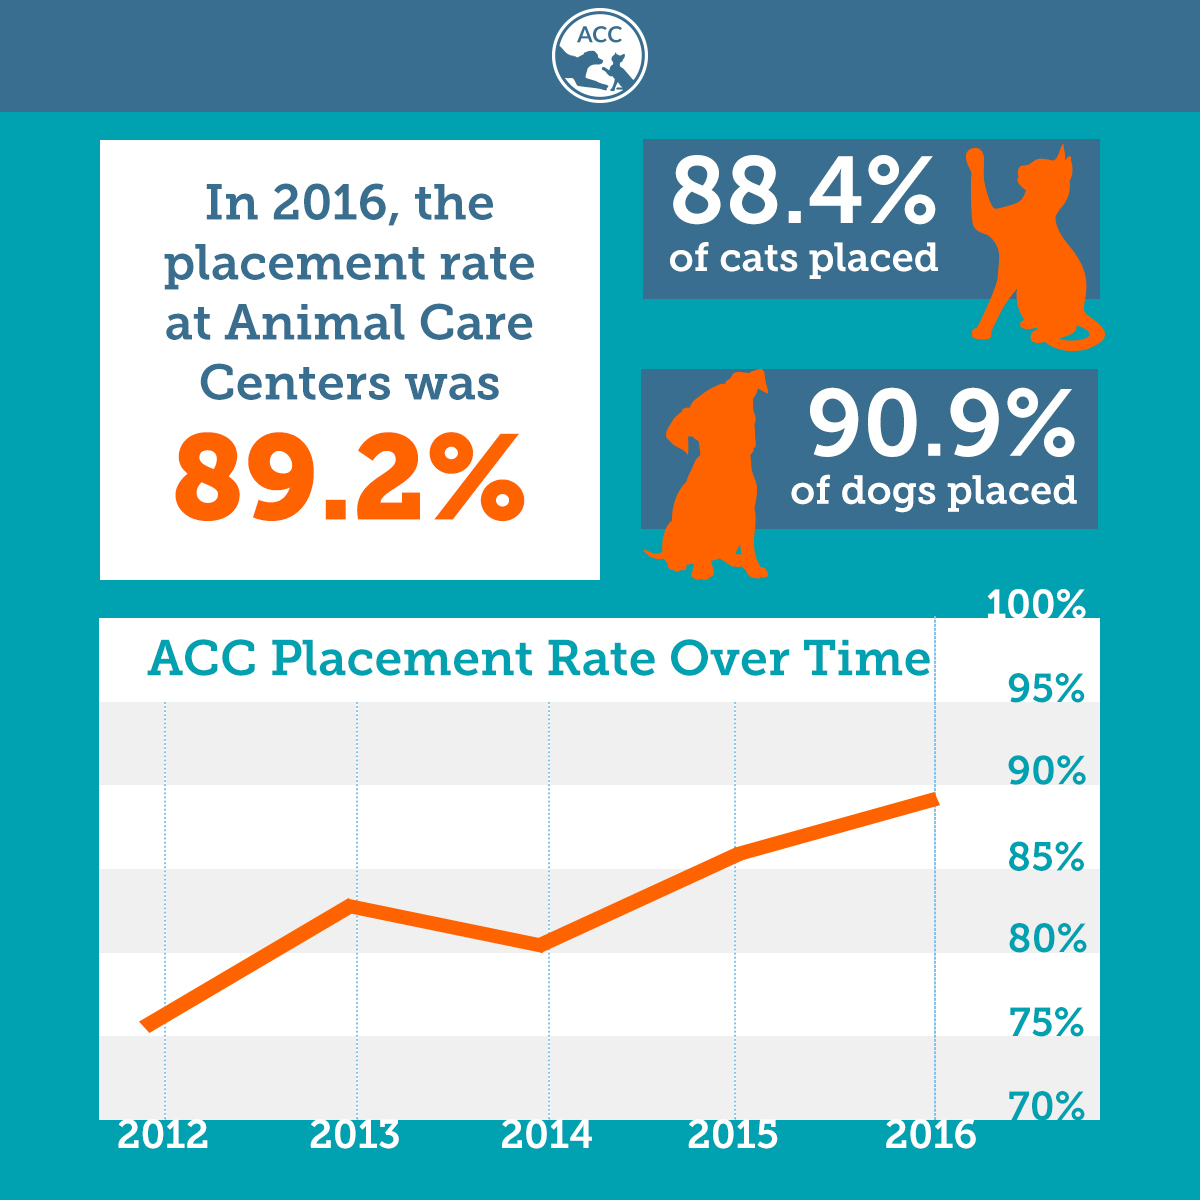 ACC growth over time